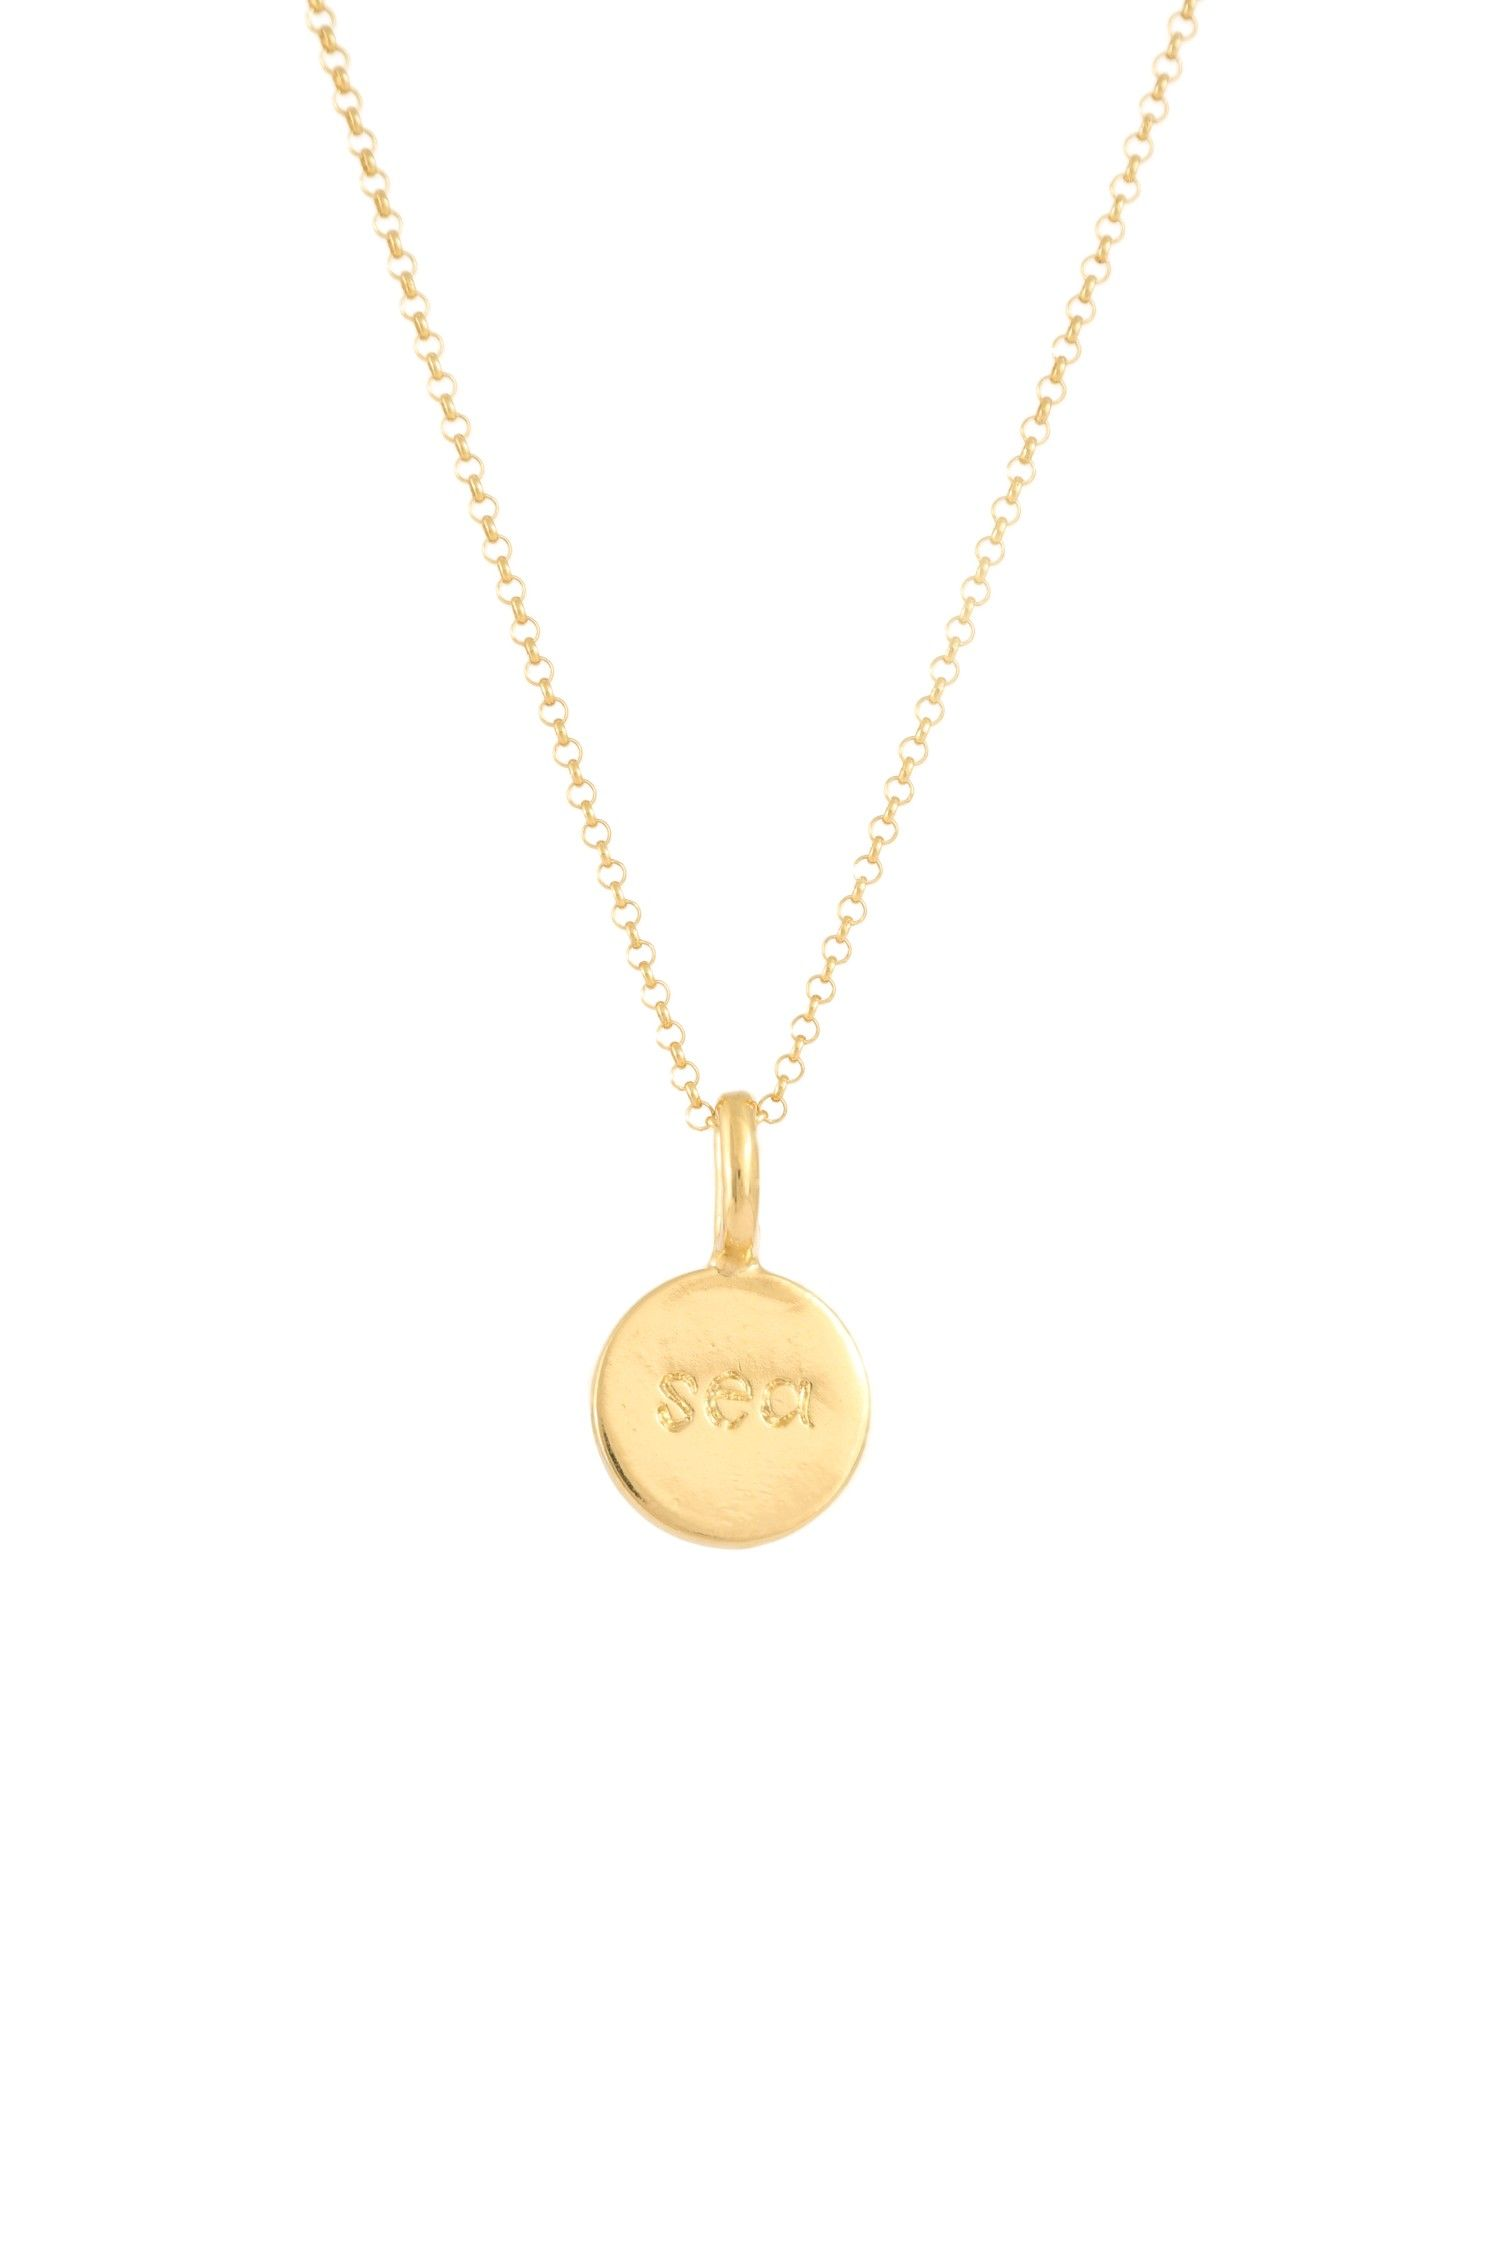 MOANINA SEA Necklace 925 Sterling Silver Gold Plated | Sea Kette Sterling Silber Vergoldet ♡